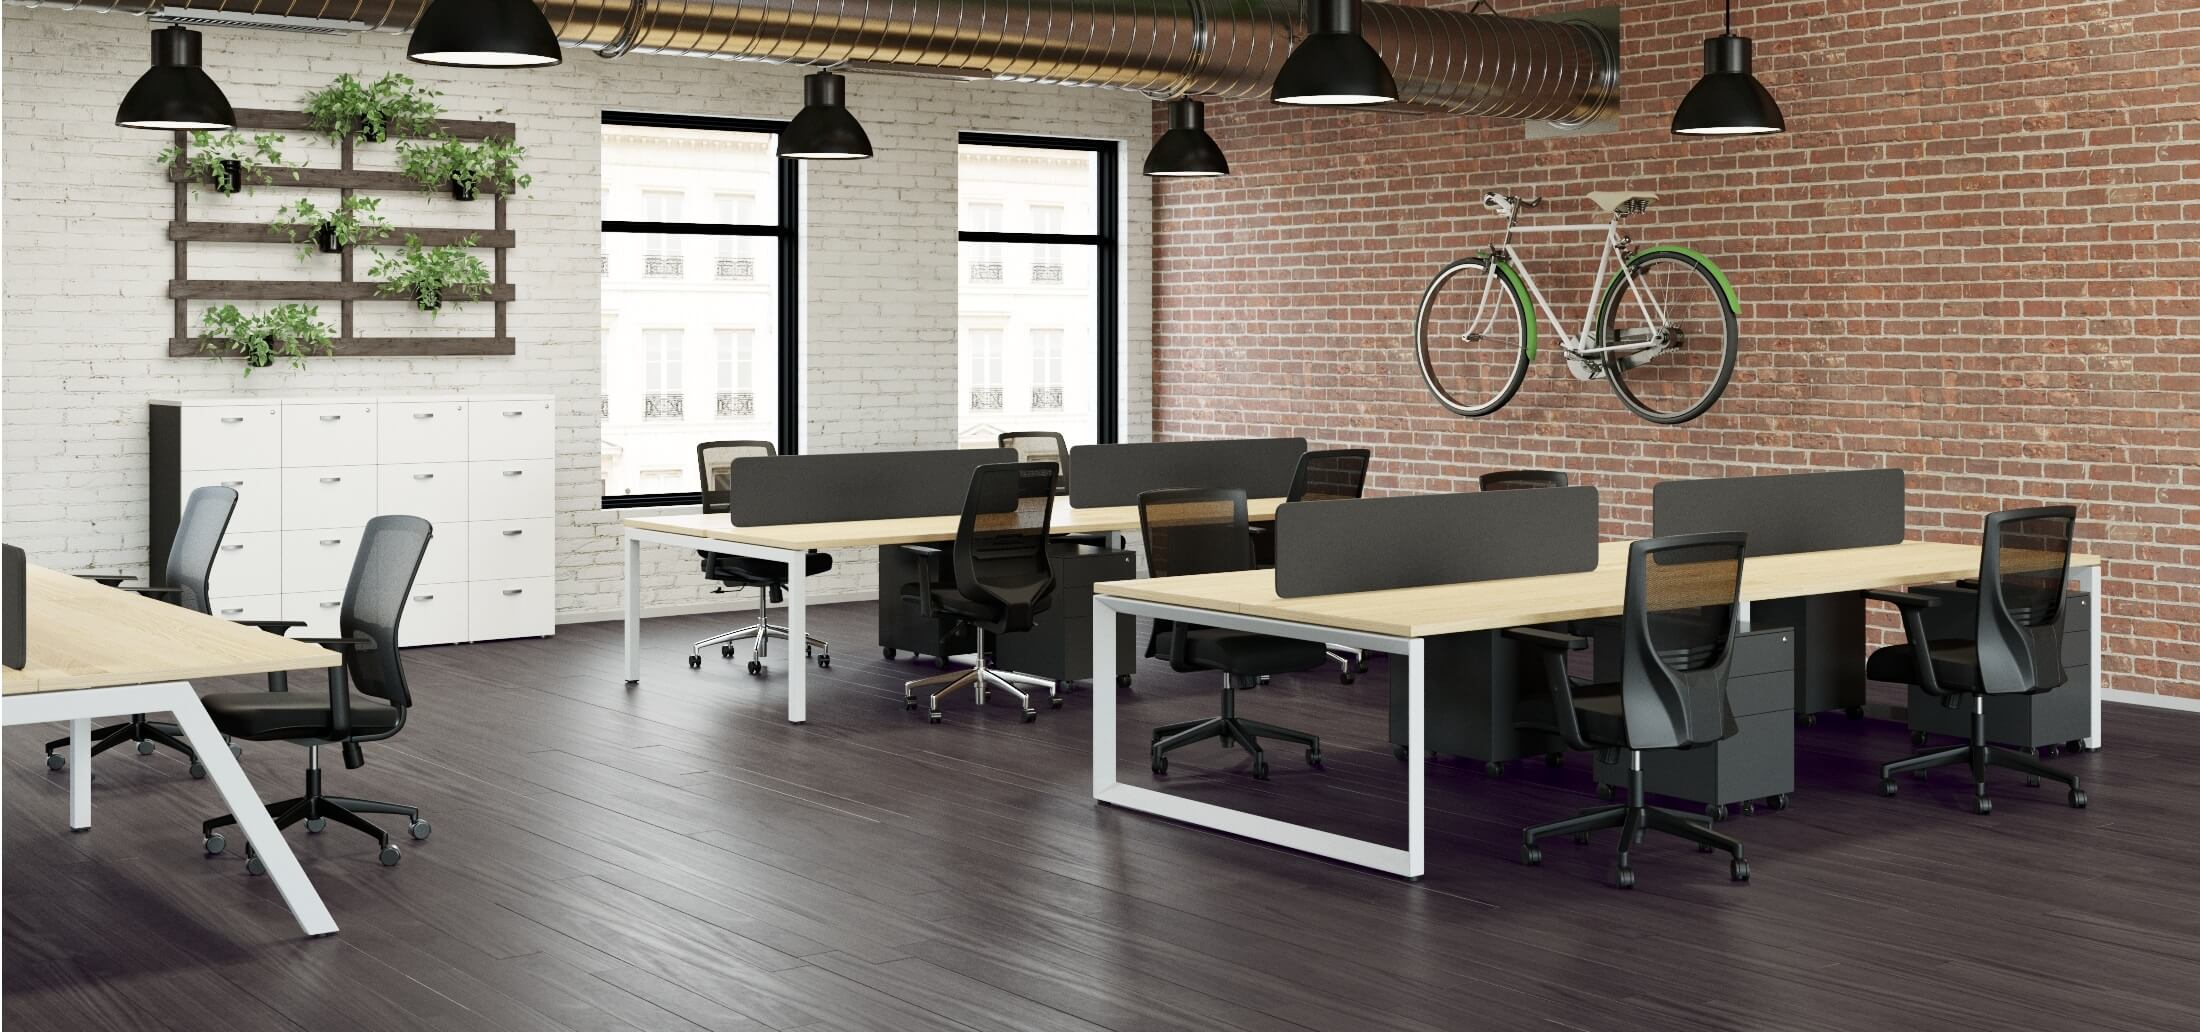 Workstation Desk Options With Screen Options